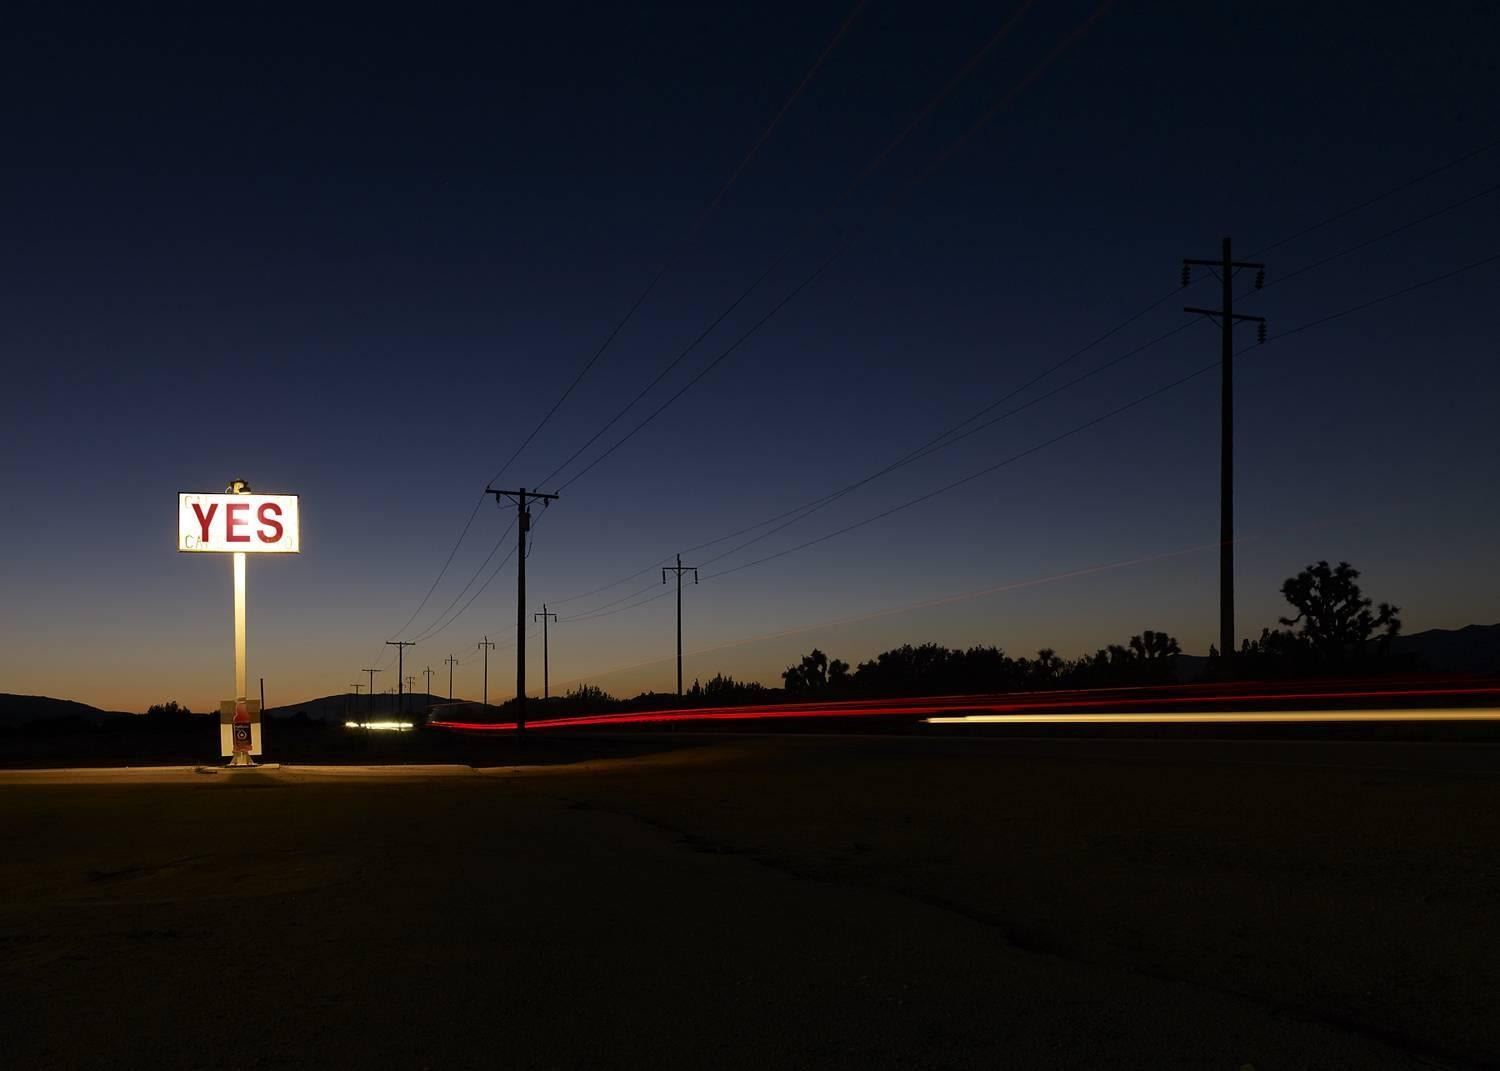 YES - large format photograph of conceptual motivational sign at night